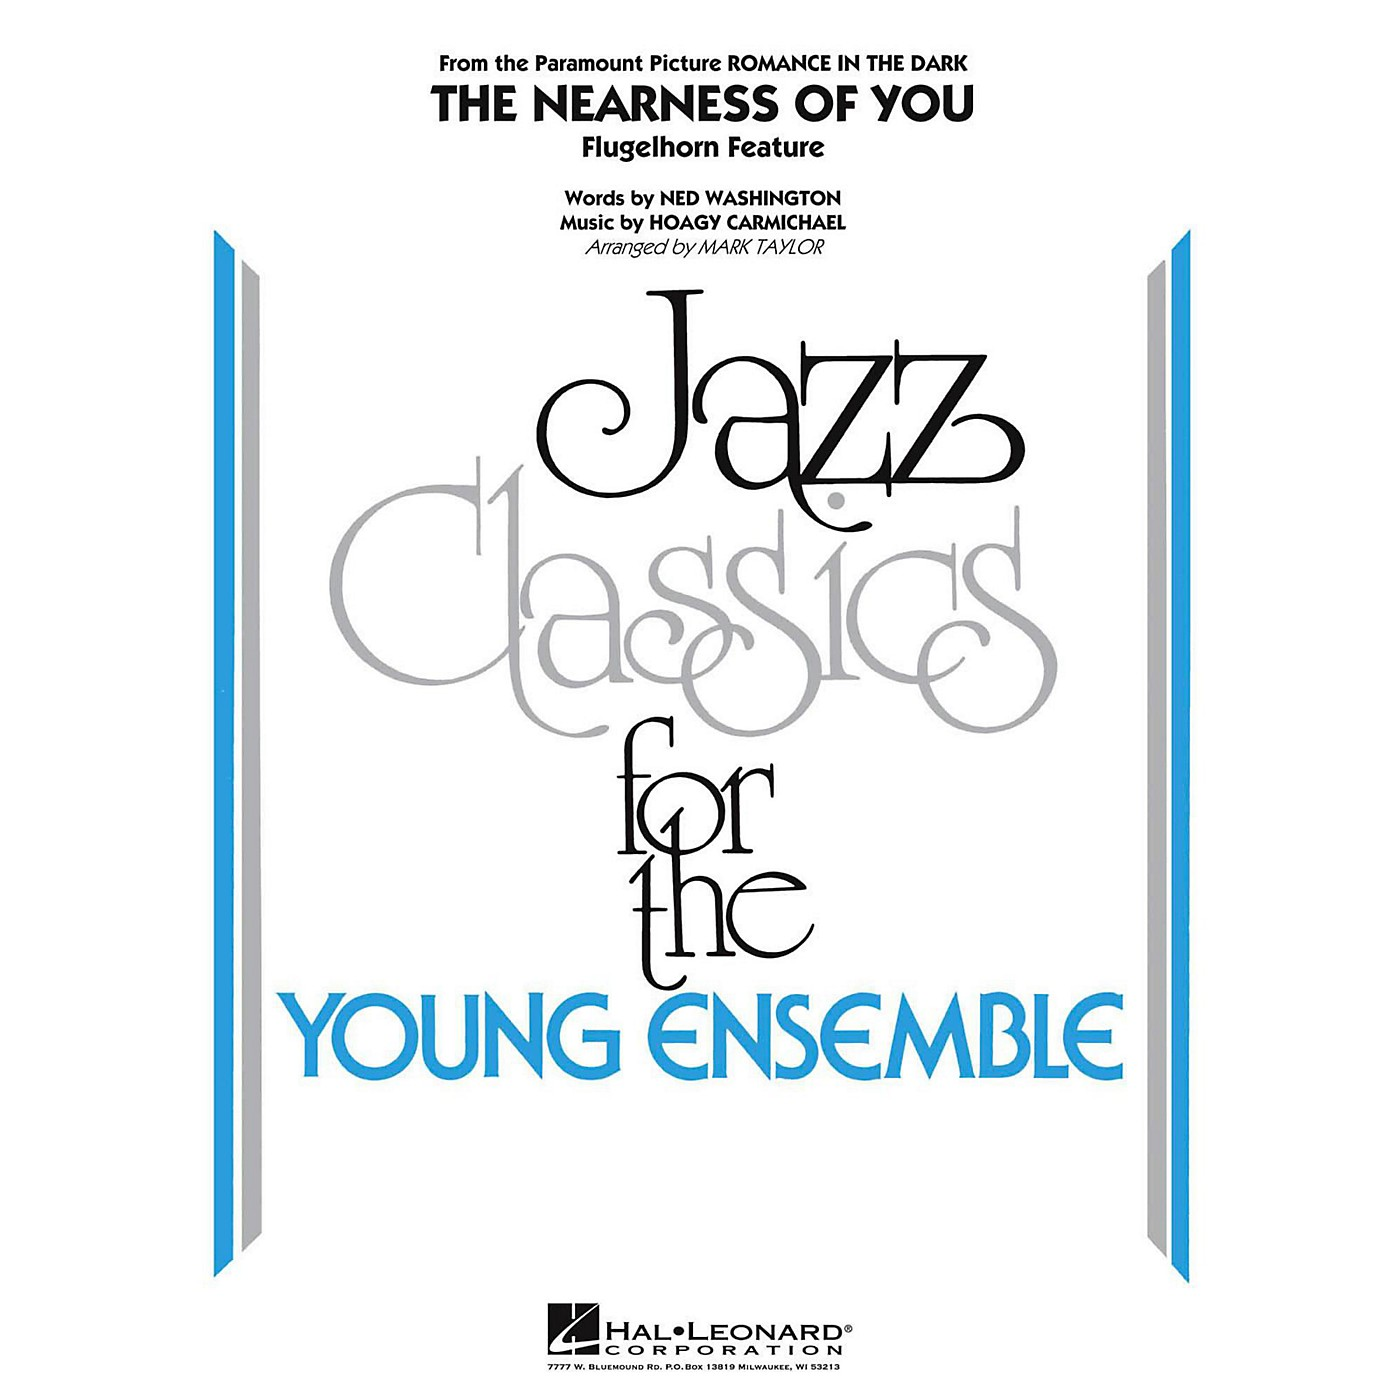 Hal Leonard The Nearness Of You (Flugelhorn Feature) Jazz Band Level 3 thumbnail